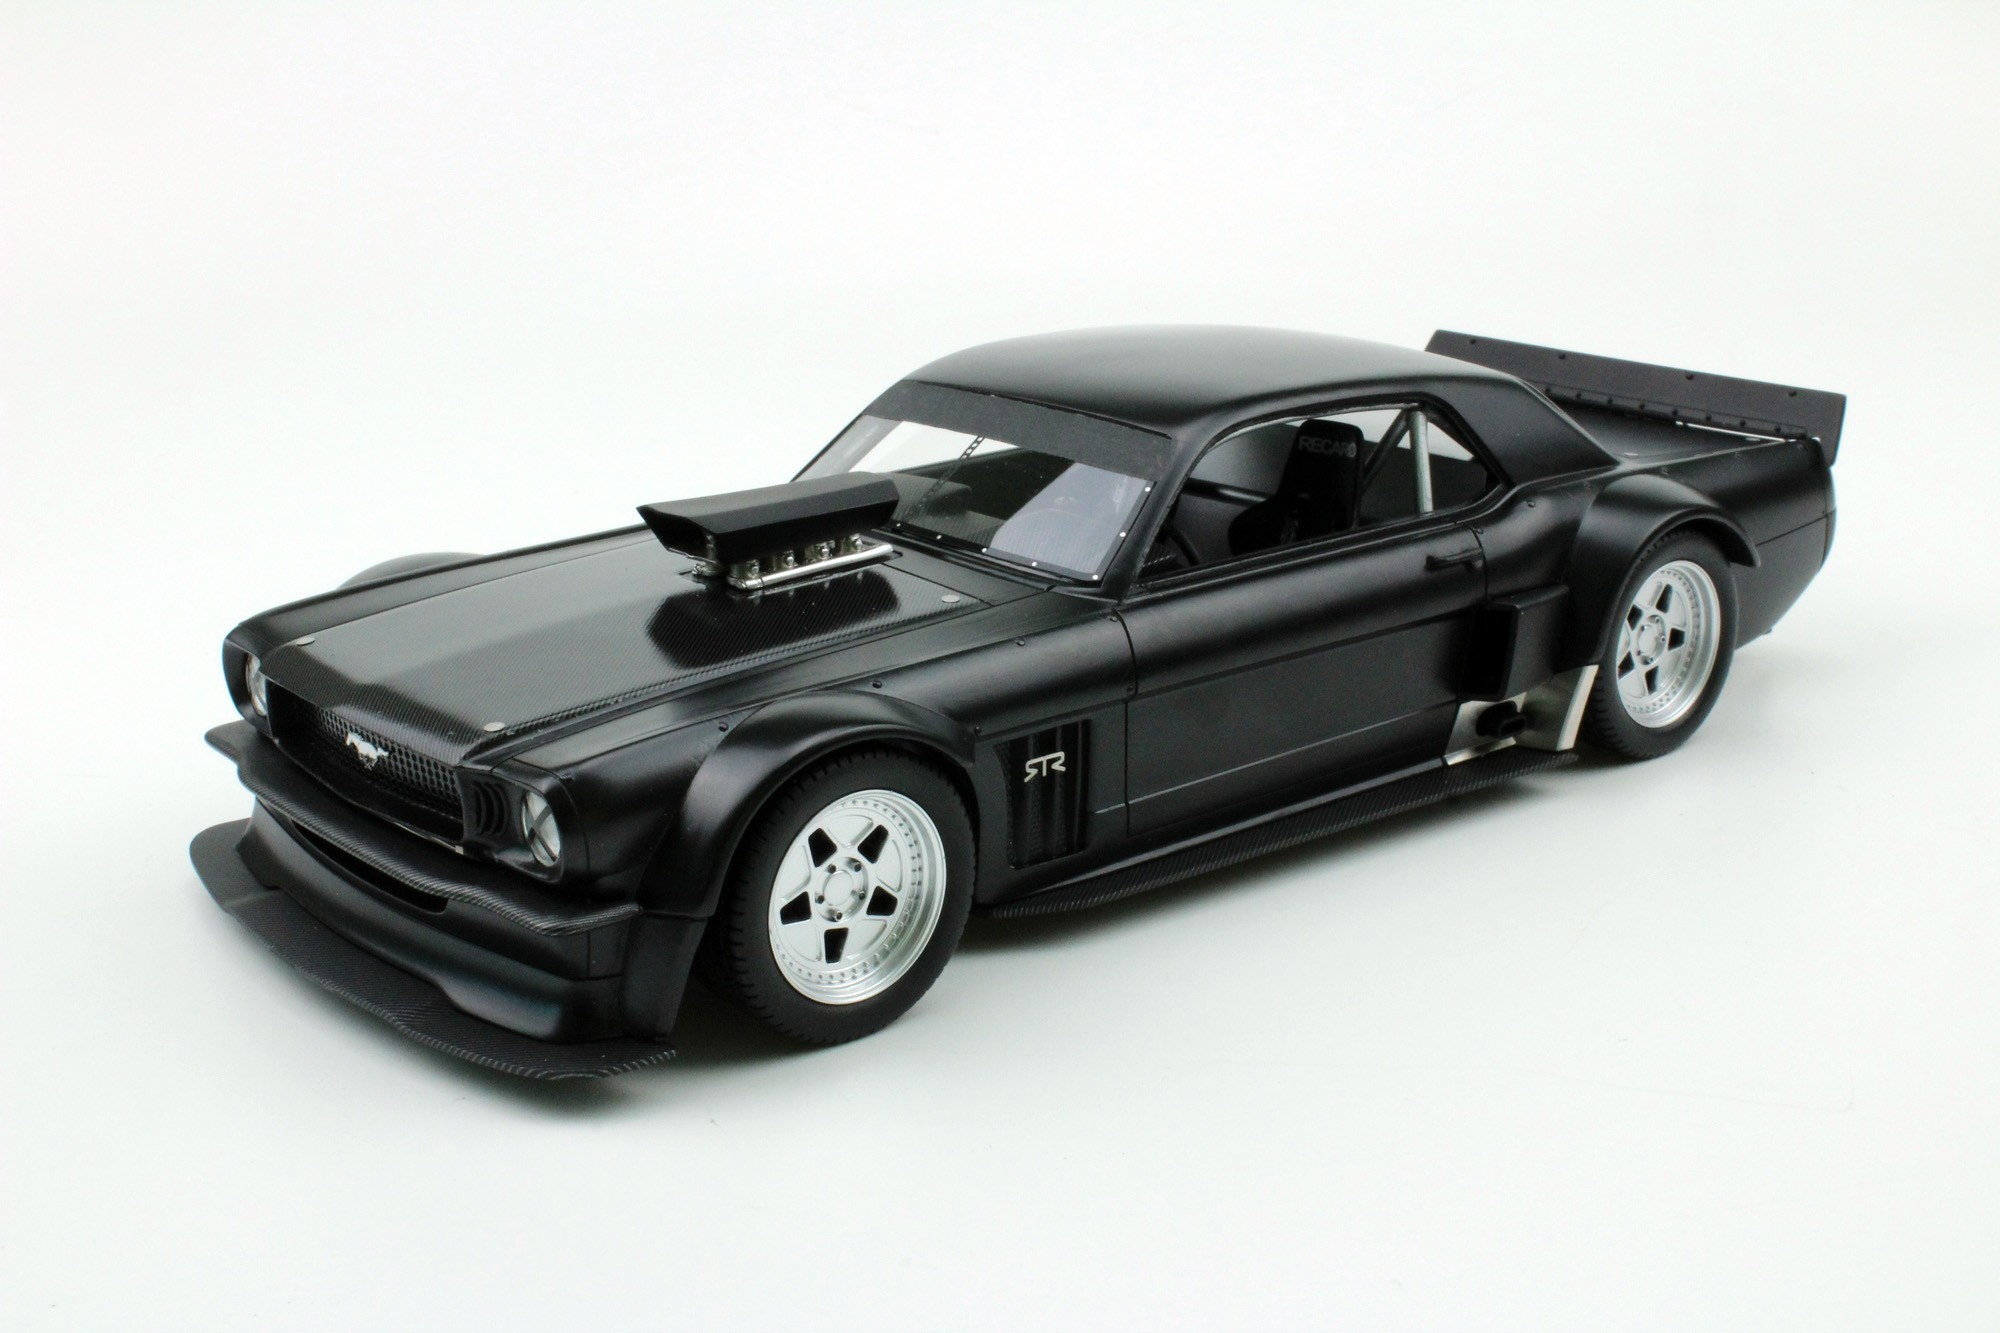 Pictures Of Ford Mustang Cars